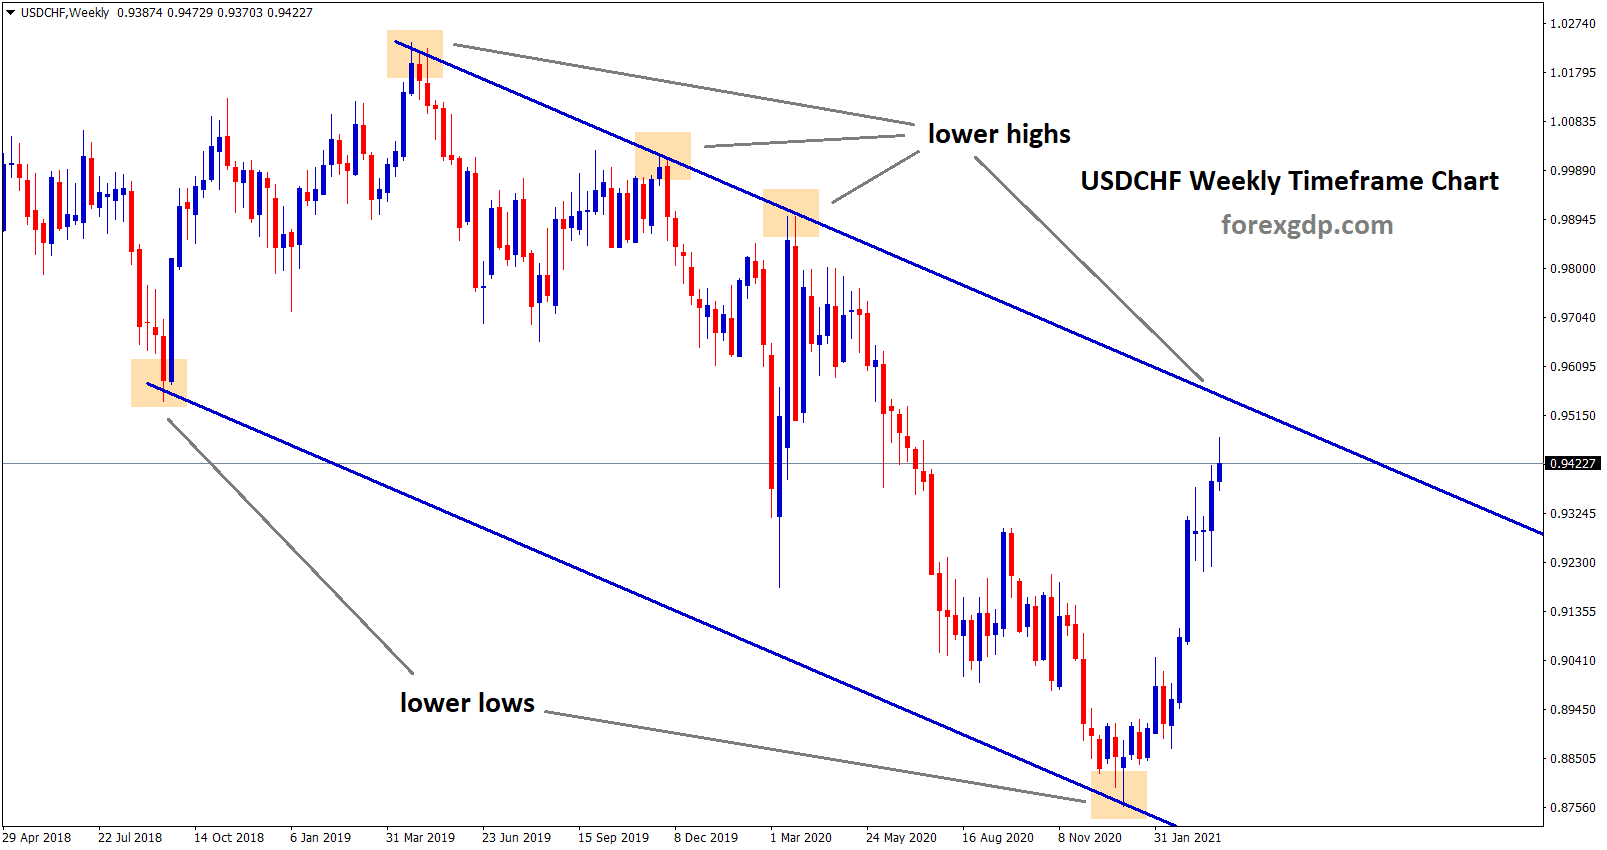 USDCHF is moving in a descending channel in the weekly timeframe chart